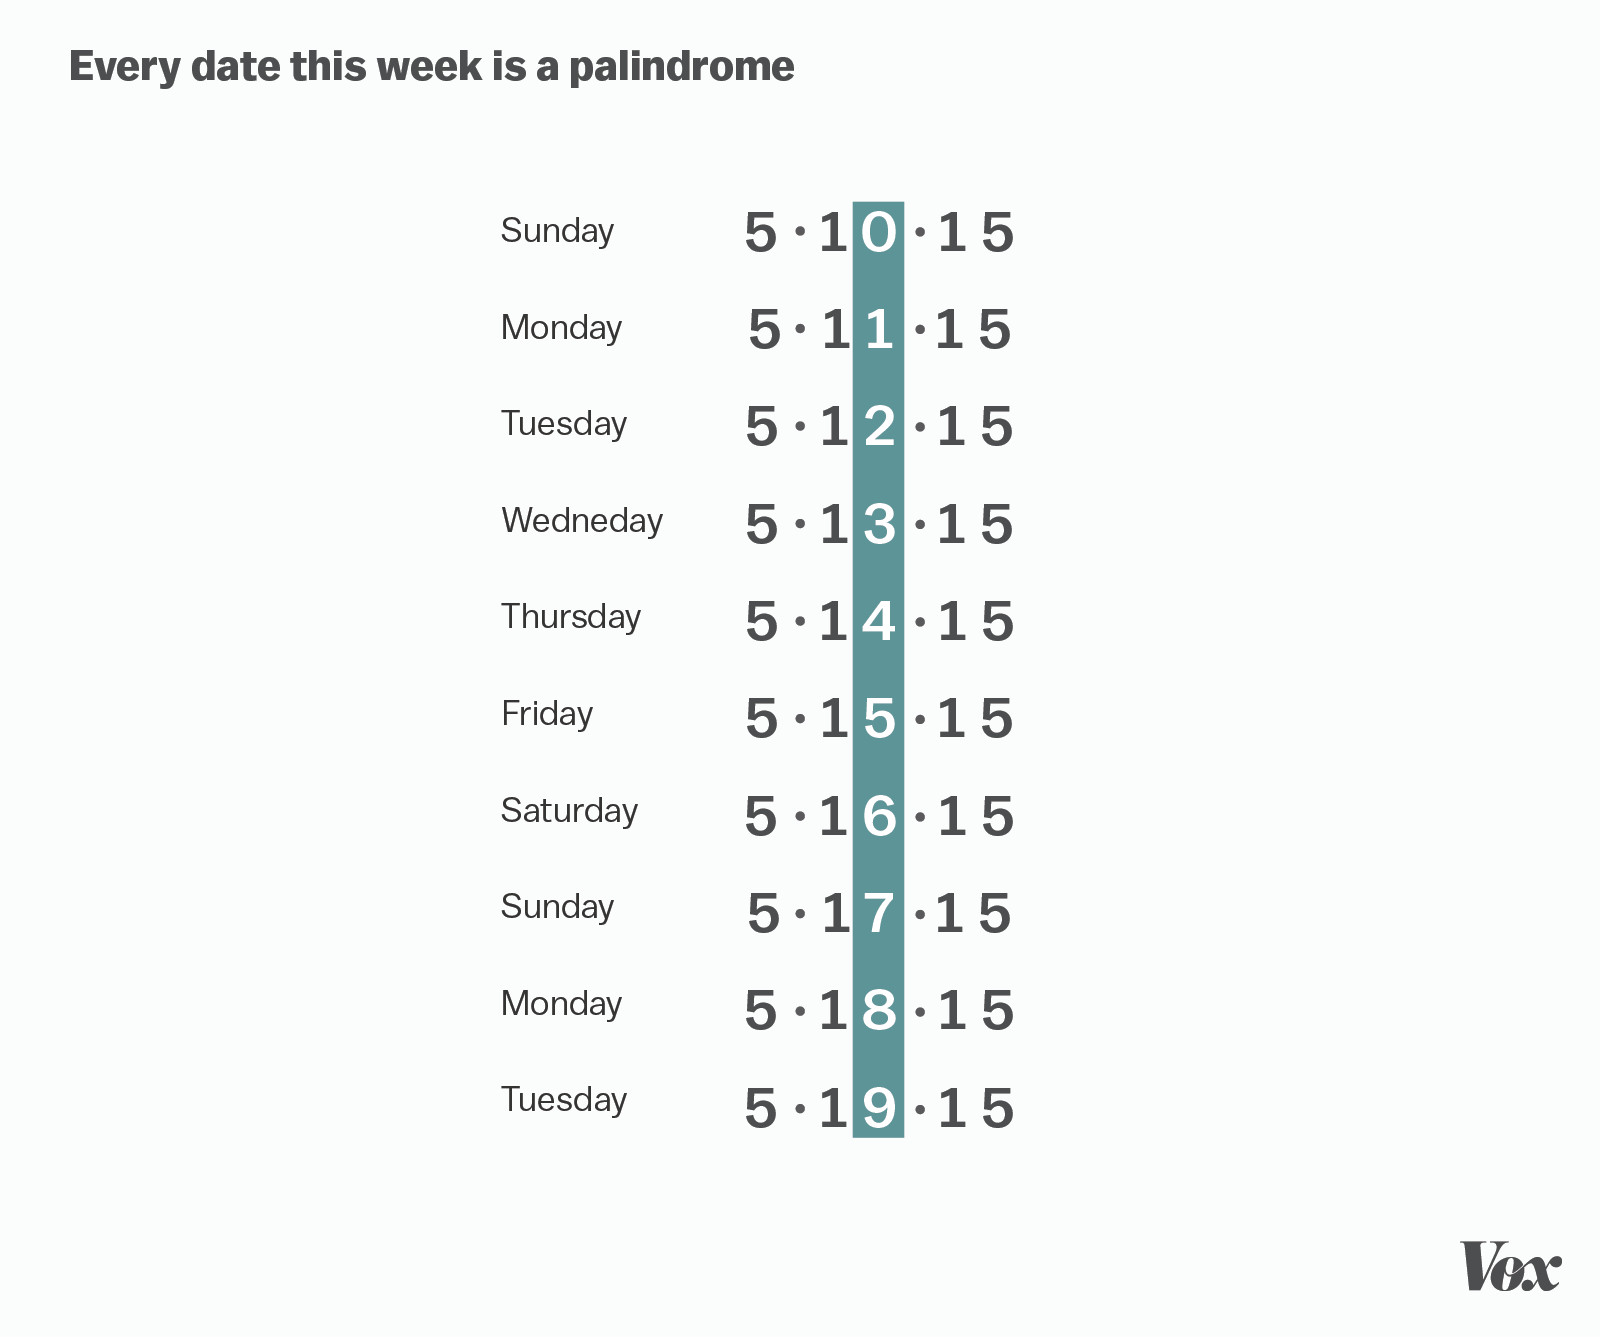 Every Date This Week Is A Palindrome